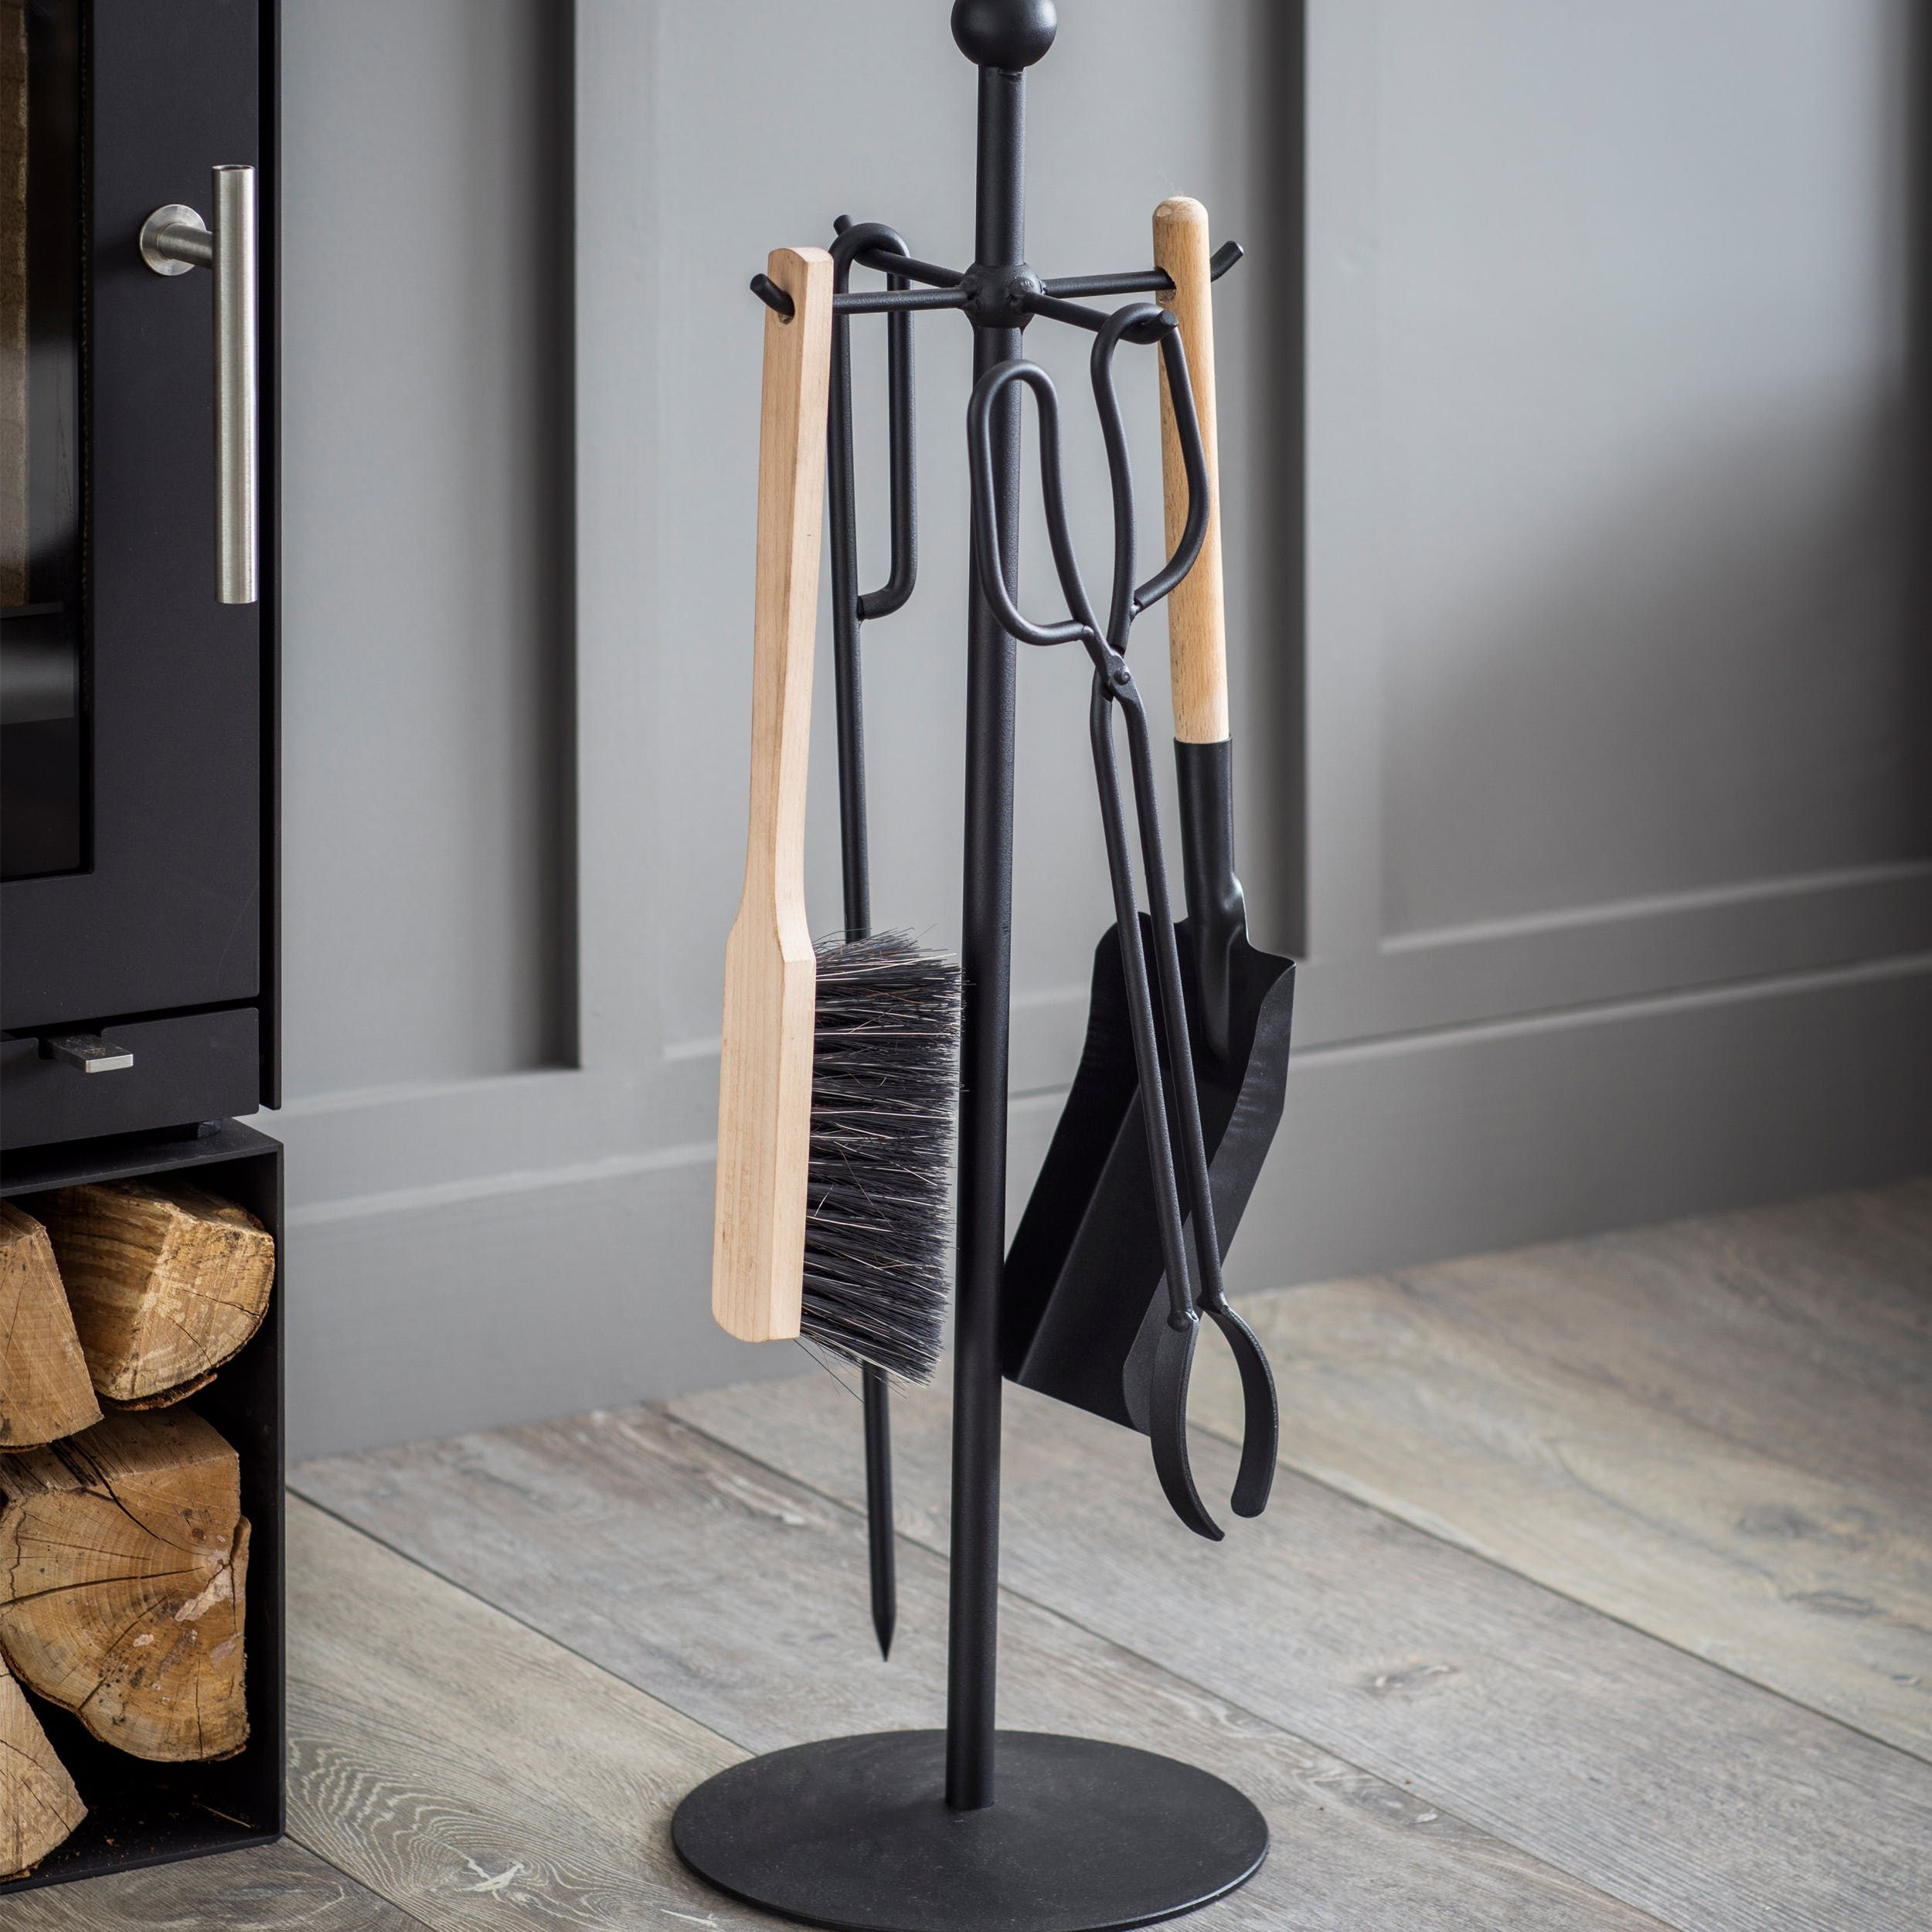 Smart And Practical The Jutland Fireside Tool Set Mixes Colours And Materials To Offer A Simple Touch Of S Fireplace Accessories Wood Burner Modern Log Burners